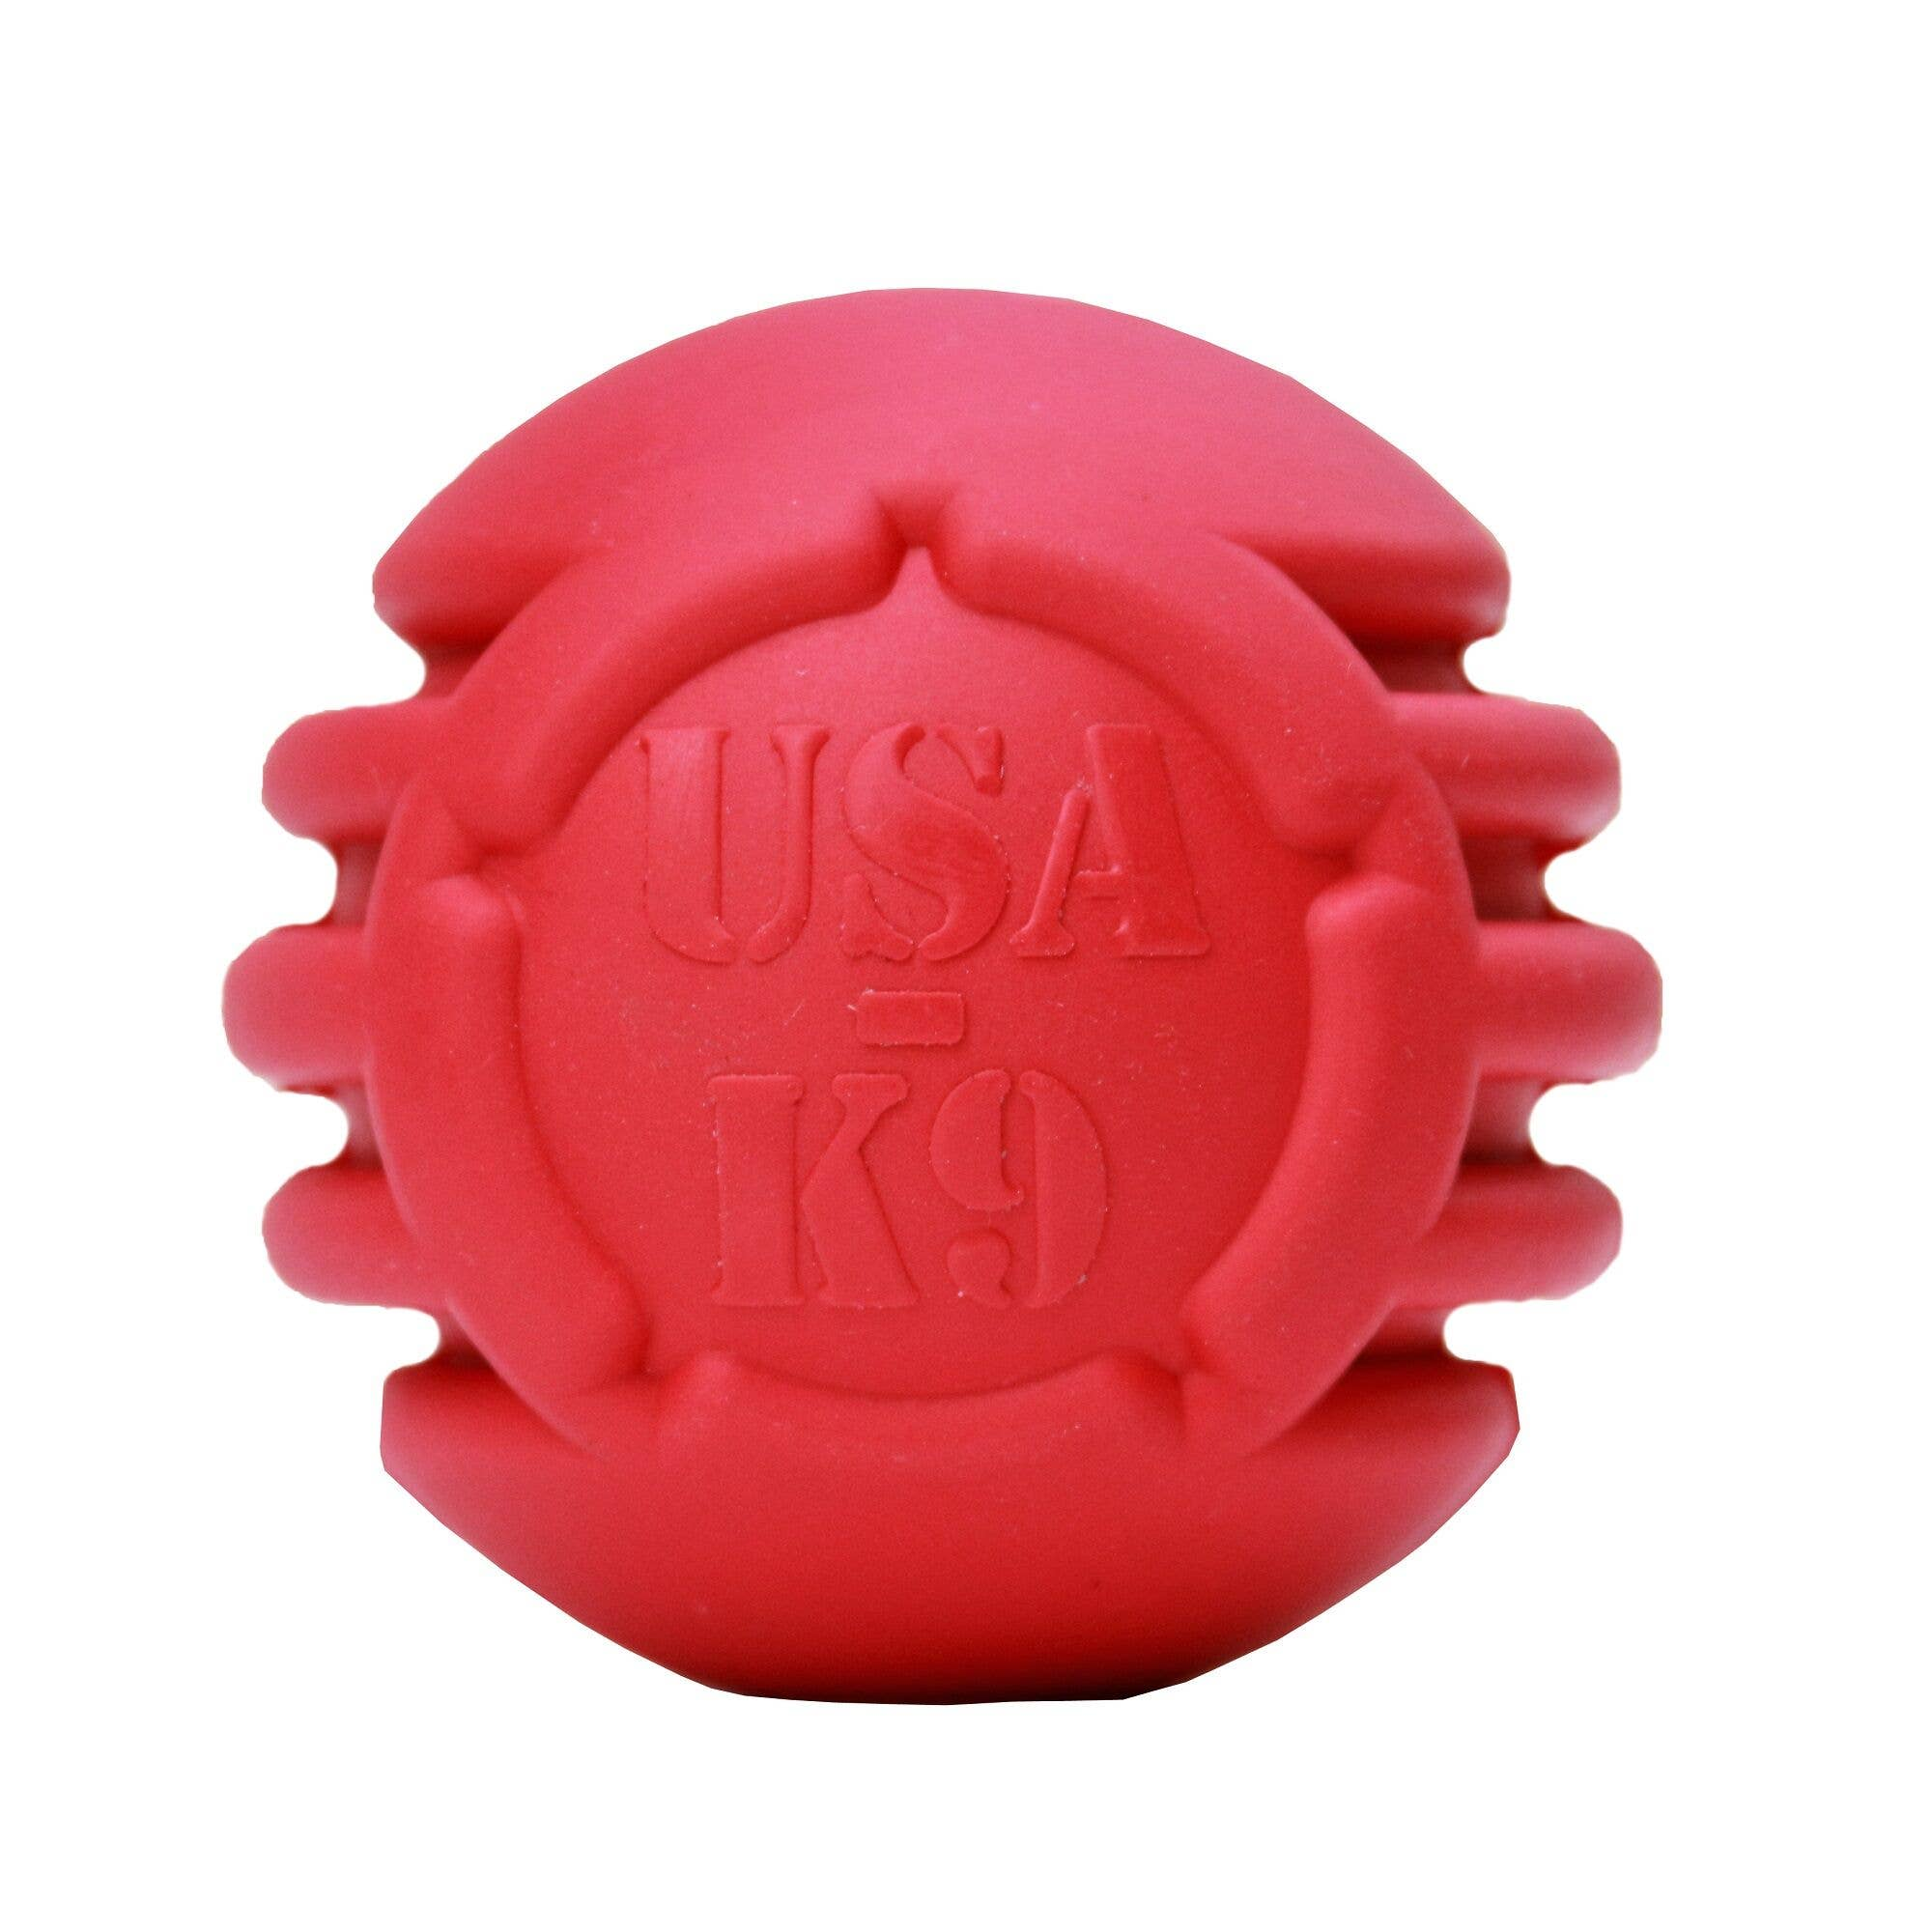 USA-K9 Stars and Stripes Ball - Retrieving Toy - Large - Red   Trada Marketplace